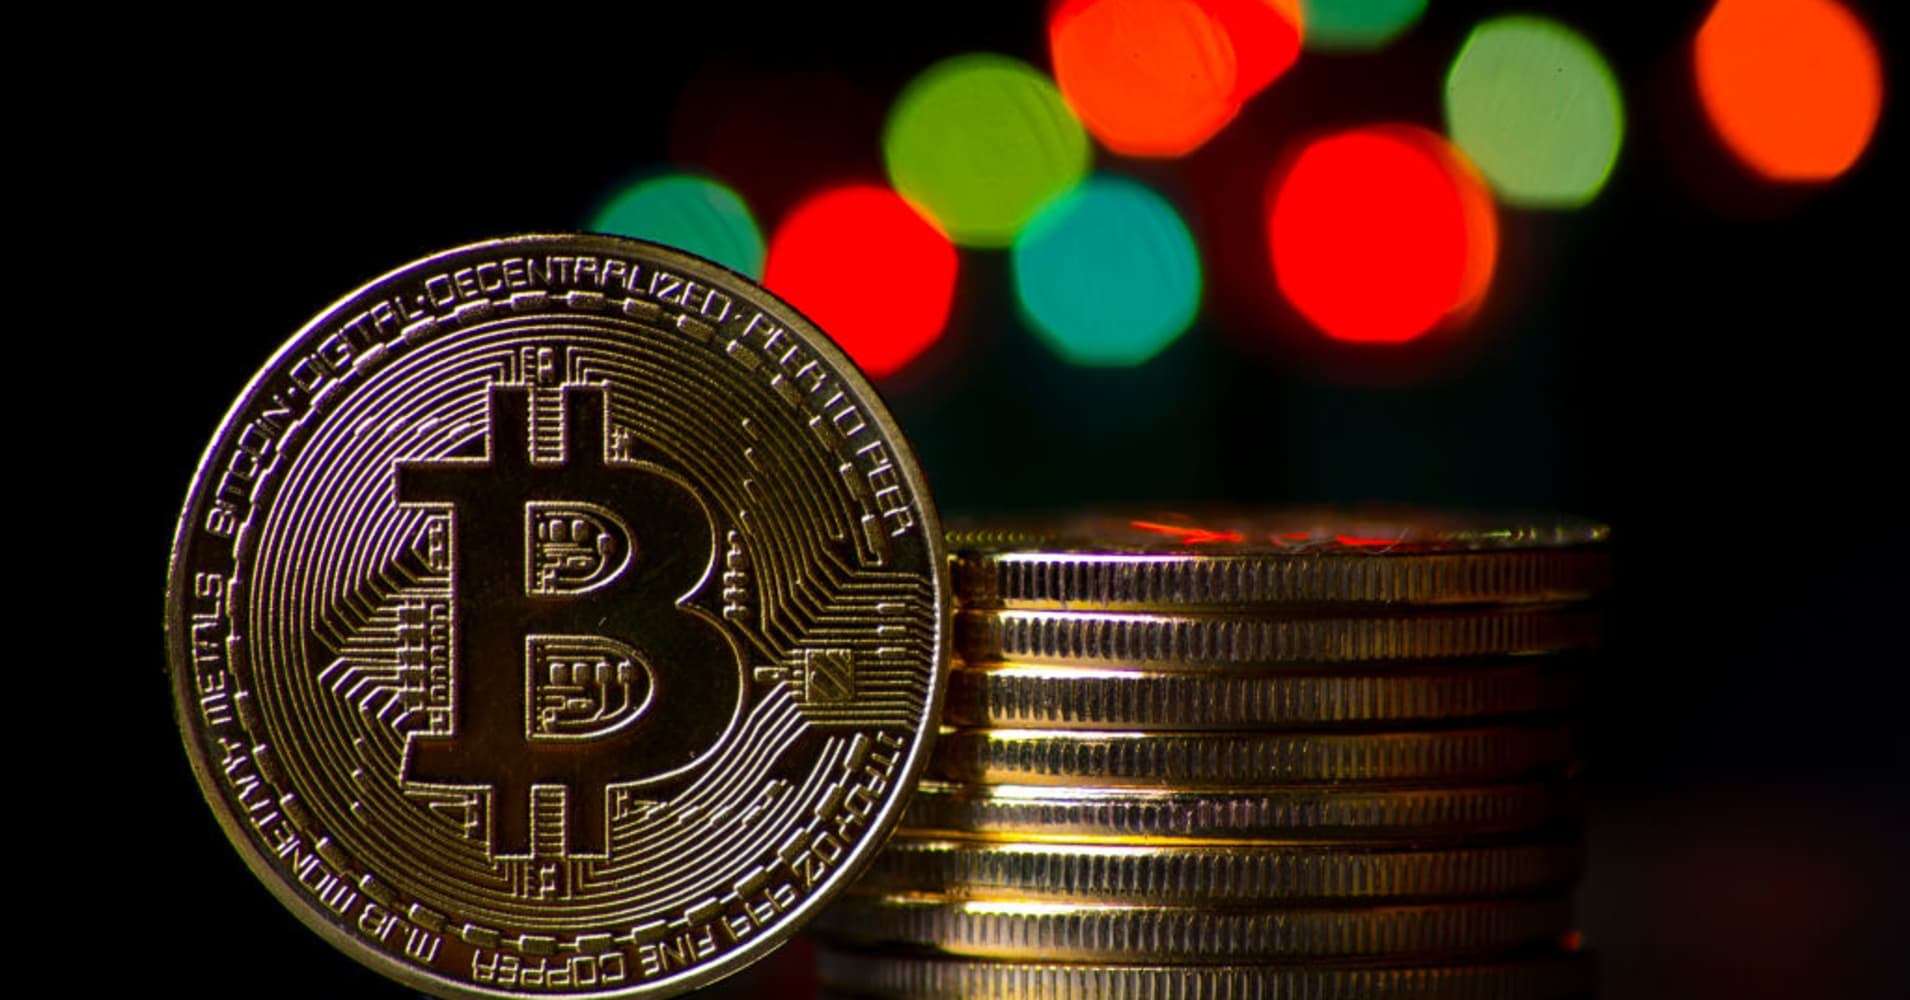 A visual representation of the cryptocurrency Bitcoin on December 12, 2017 in London, England.